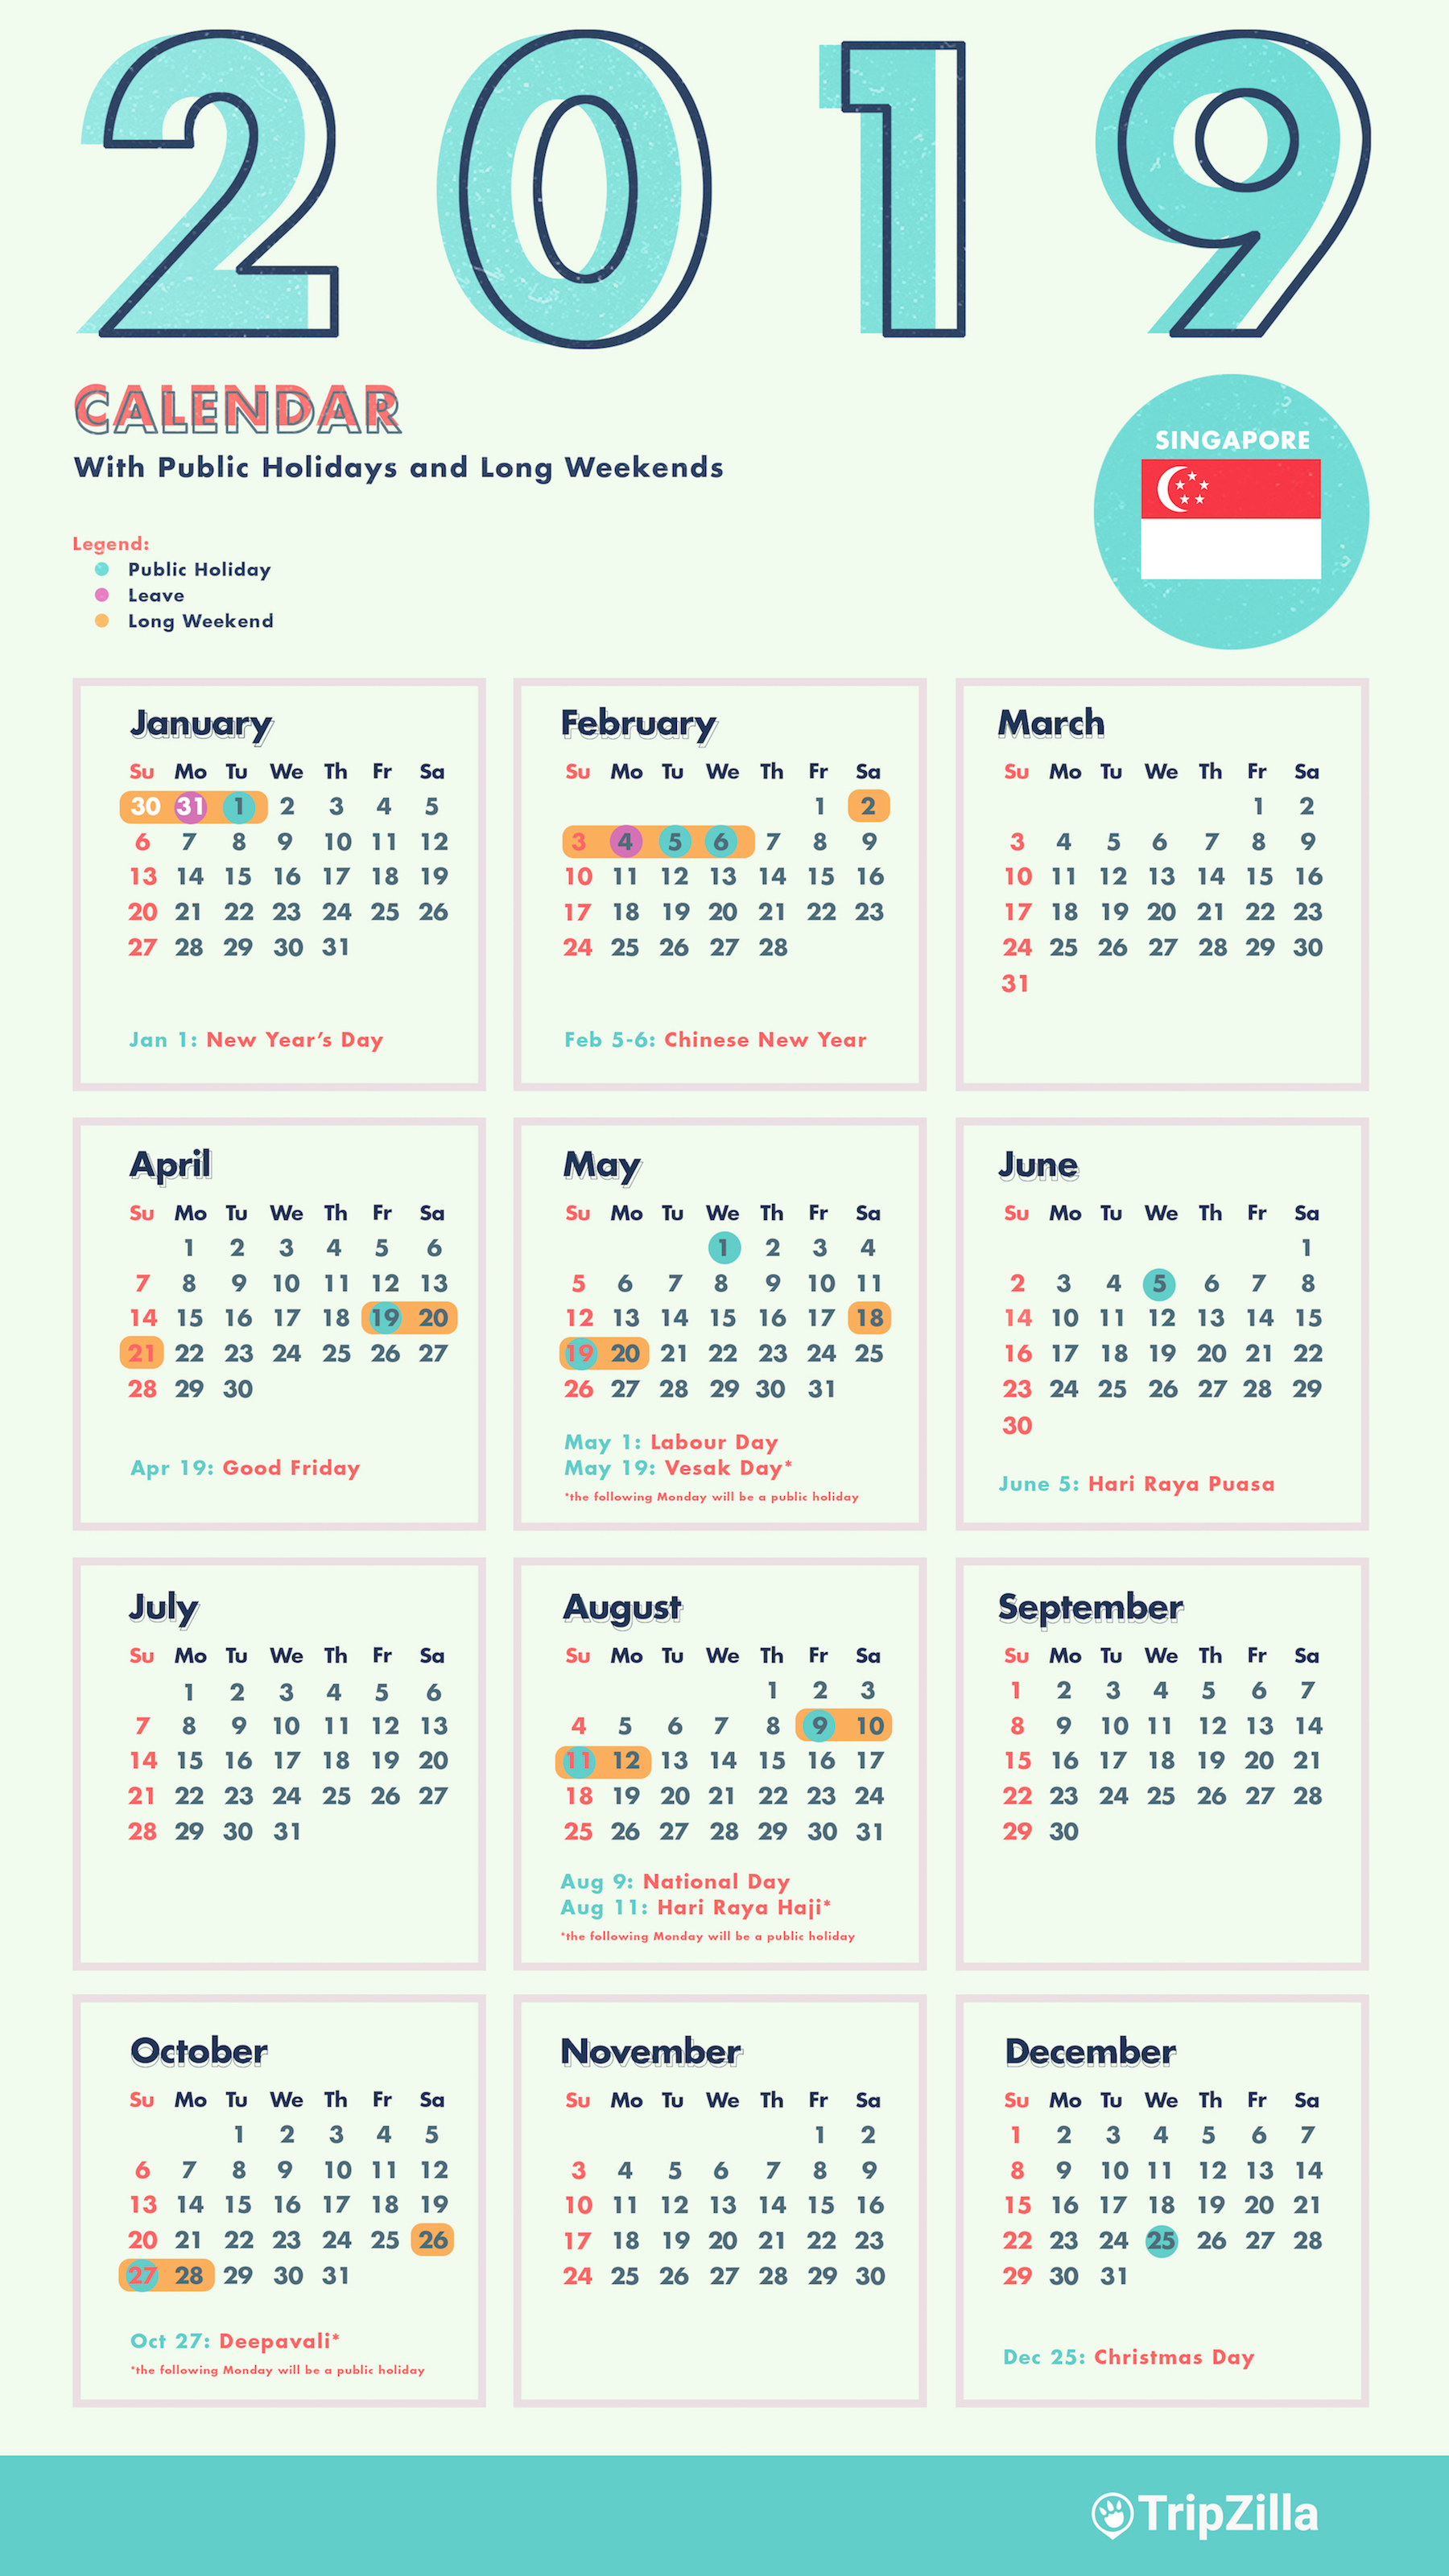 Calendar For Year 2019 South Africa With 6 Long Weekends In Singapore Bonus Cheatsheet